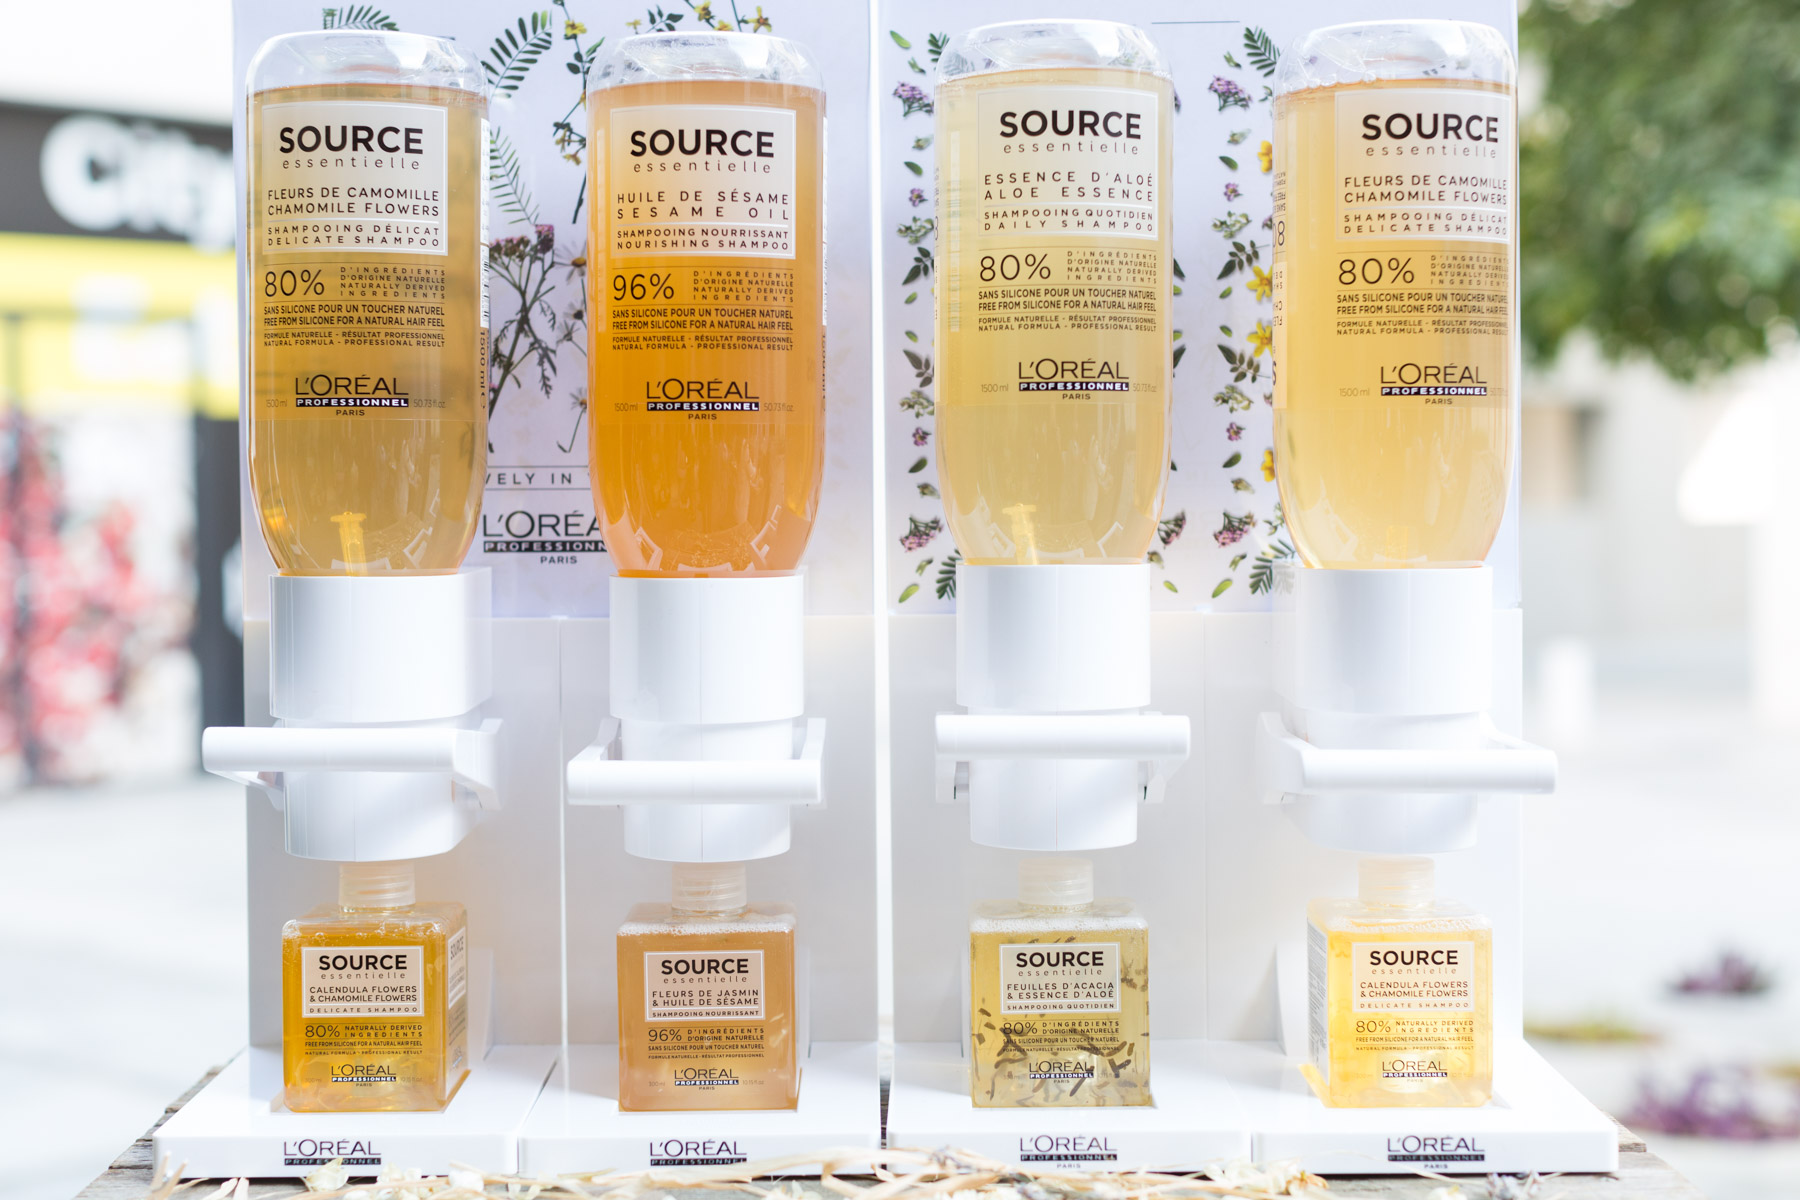 Source Essentielle products from L'Oreal Paris by Loesje Kessels Event Photographer Dubai